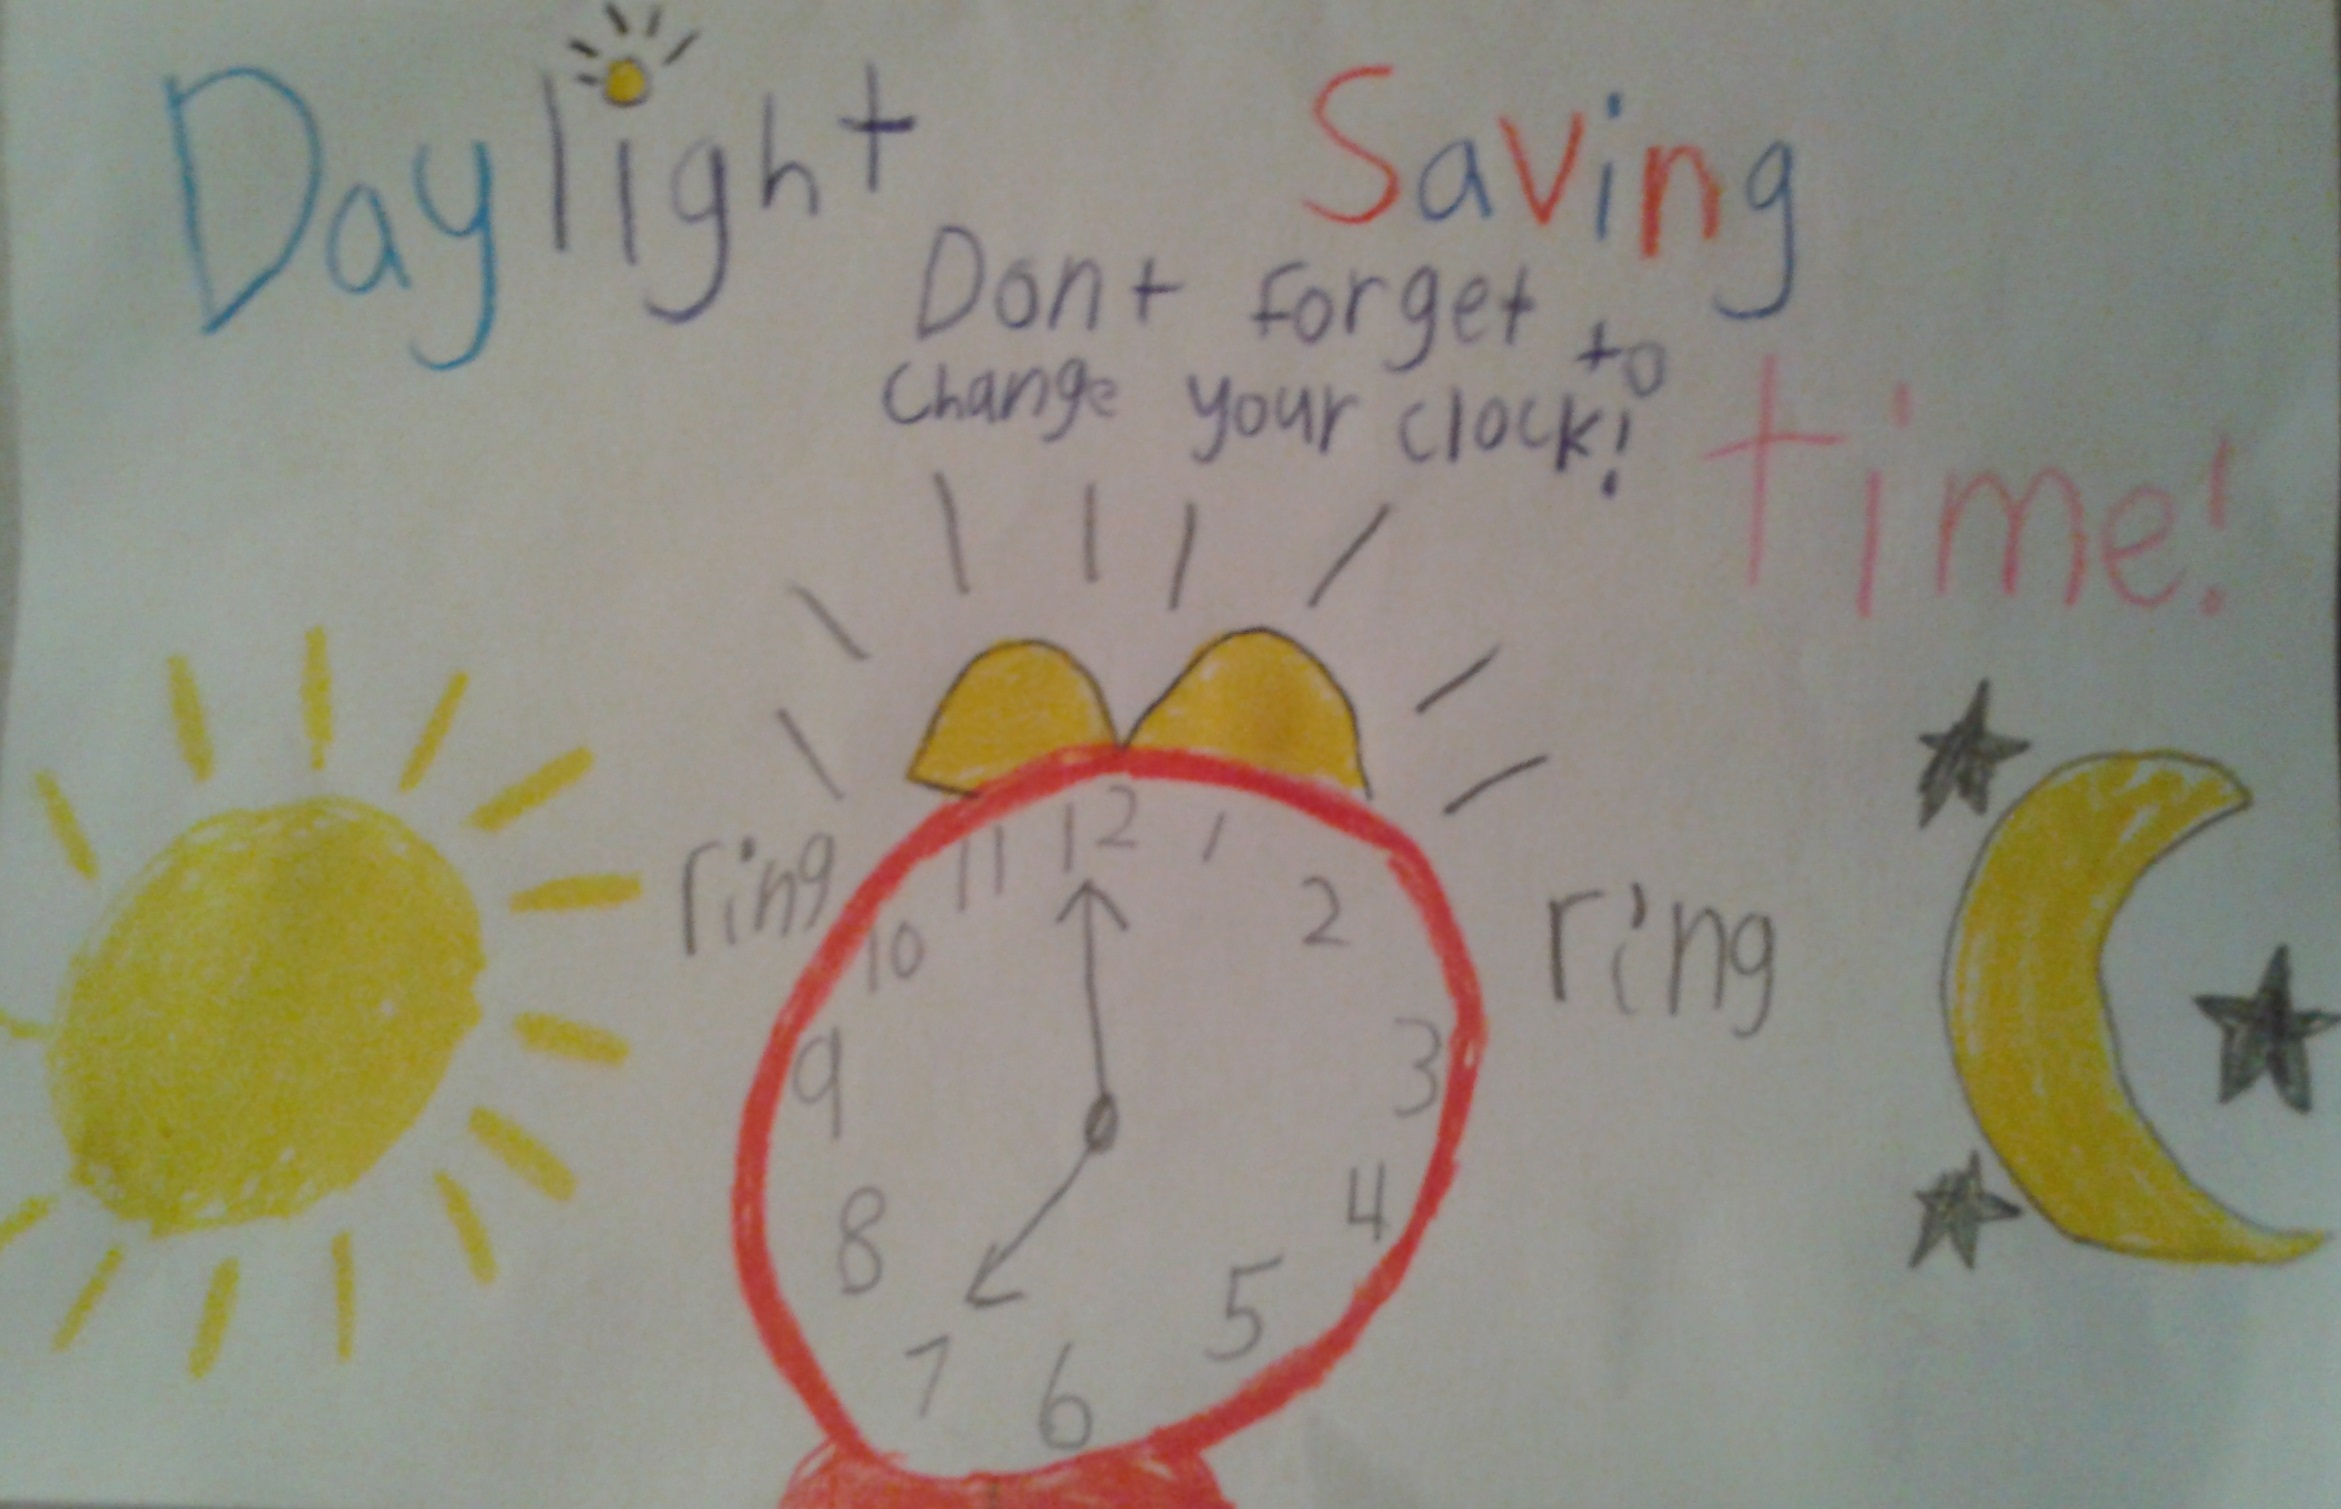 Daylight saving time